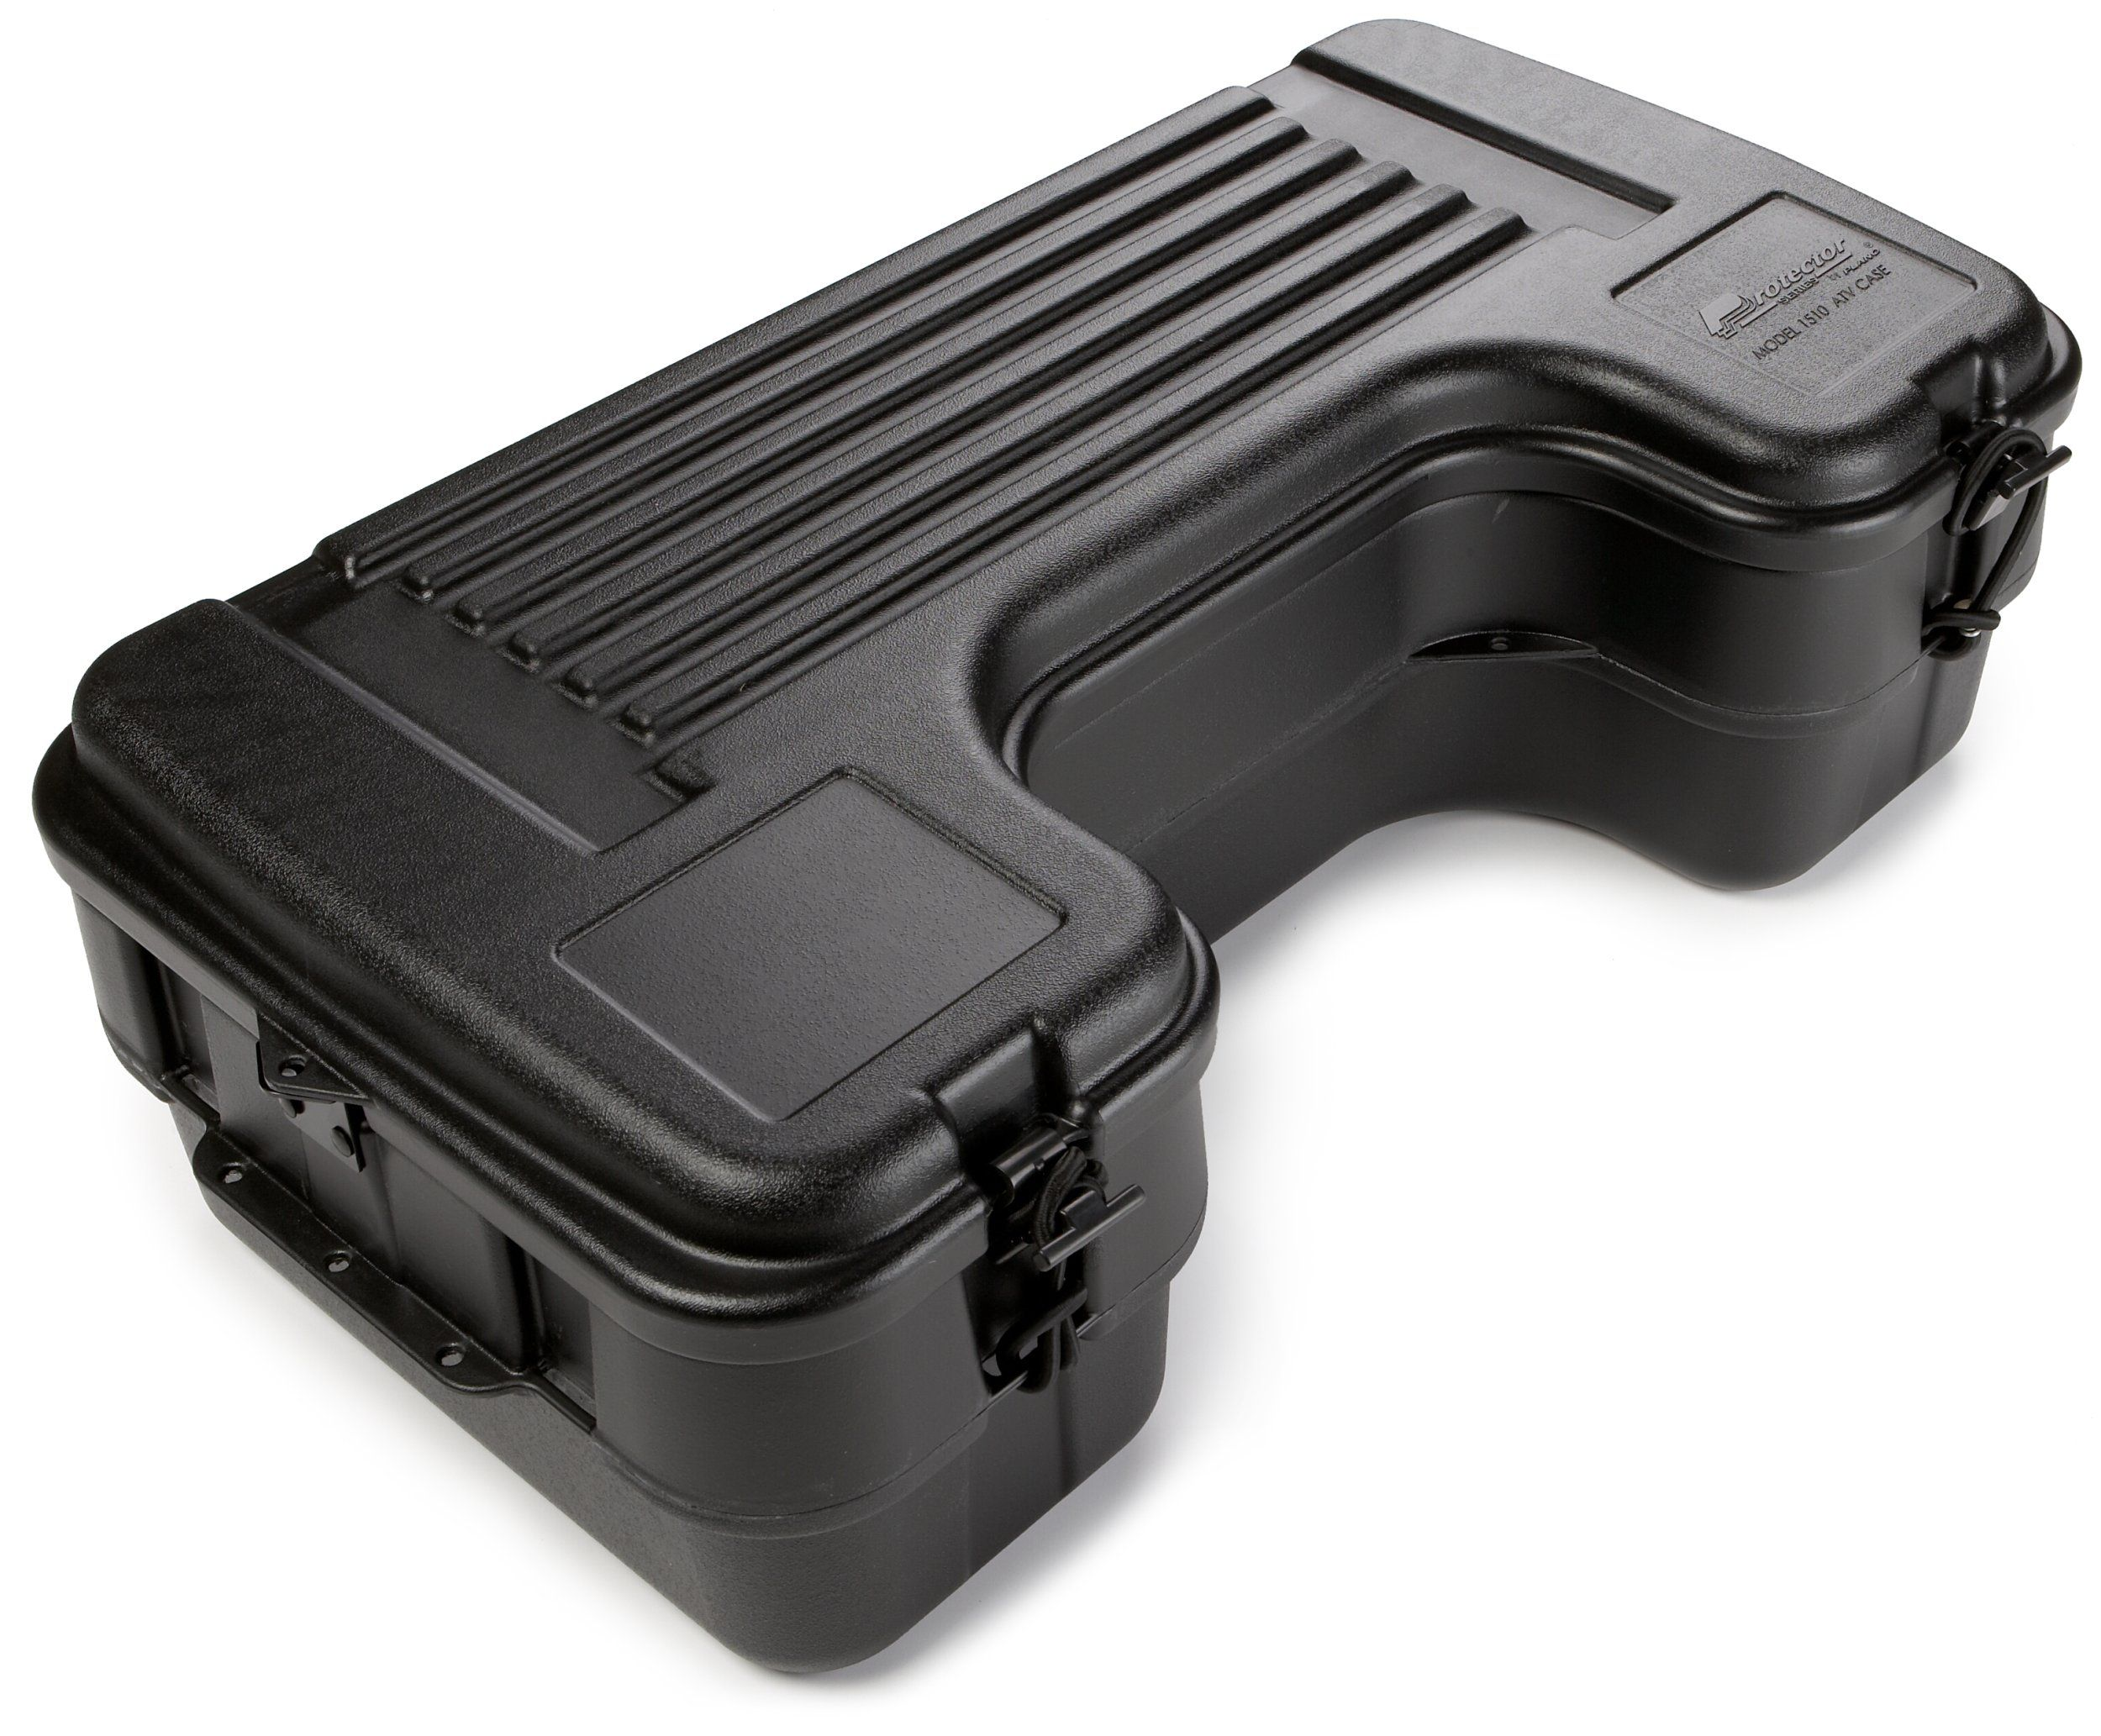 Plano 1510 01 Rear Mount Atv Storage Box Atv Atv Cargo